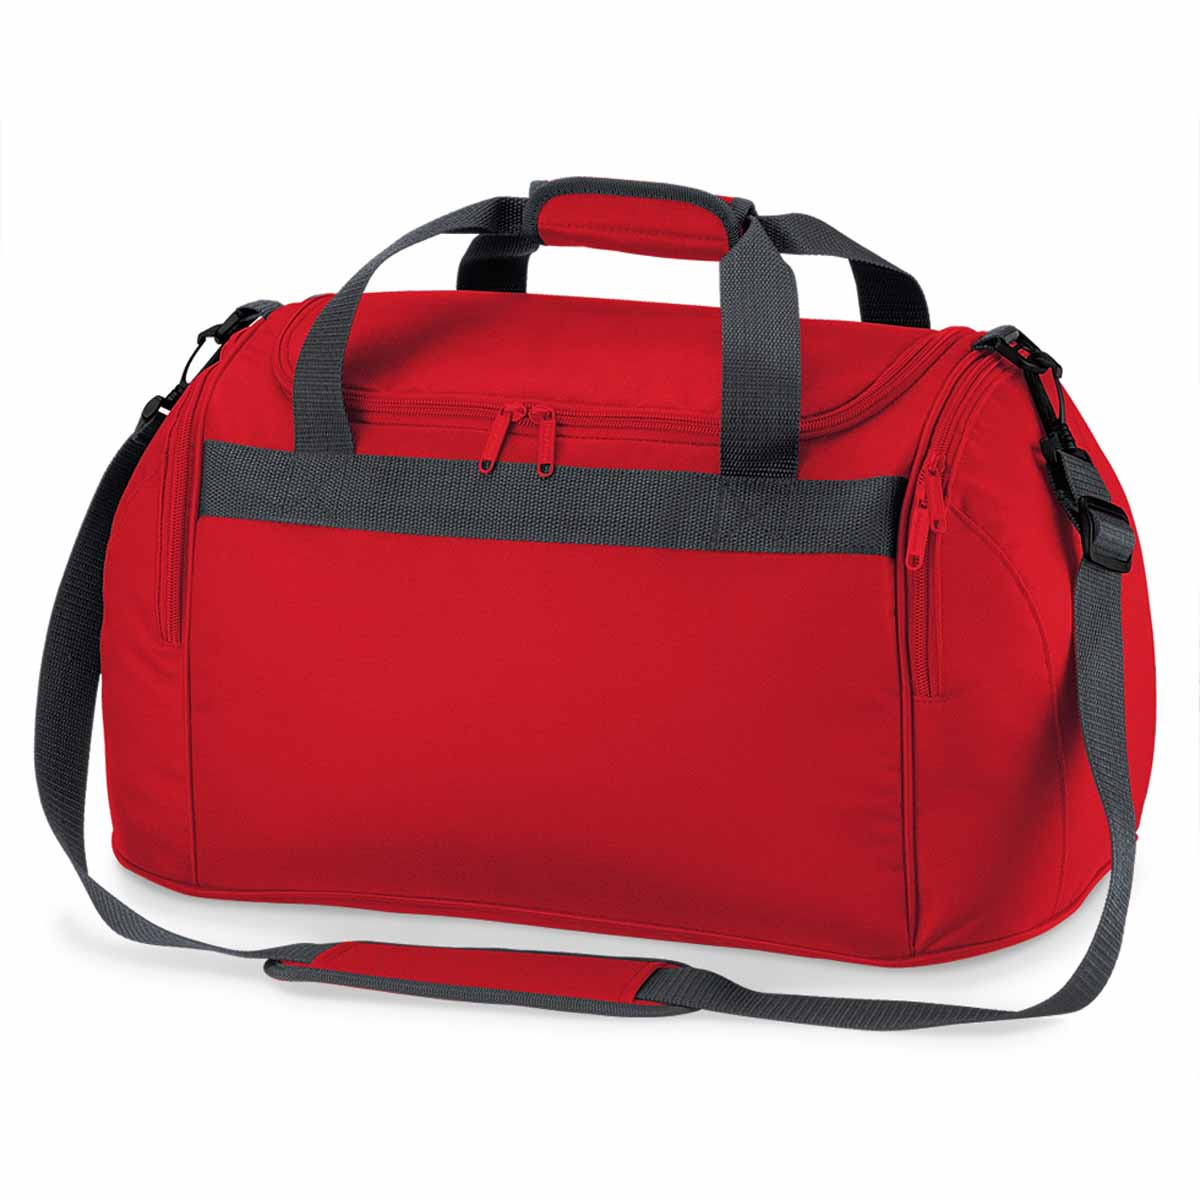 Sac de voyage - multi-sports - 26 L - BG200 - rouge